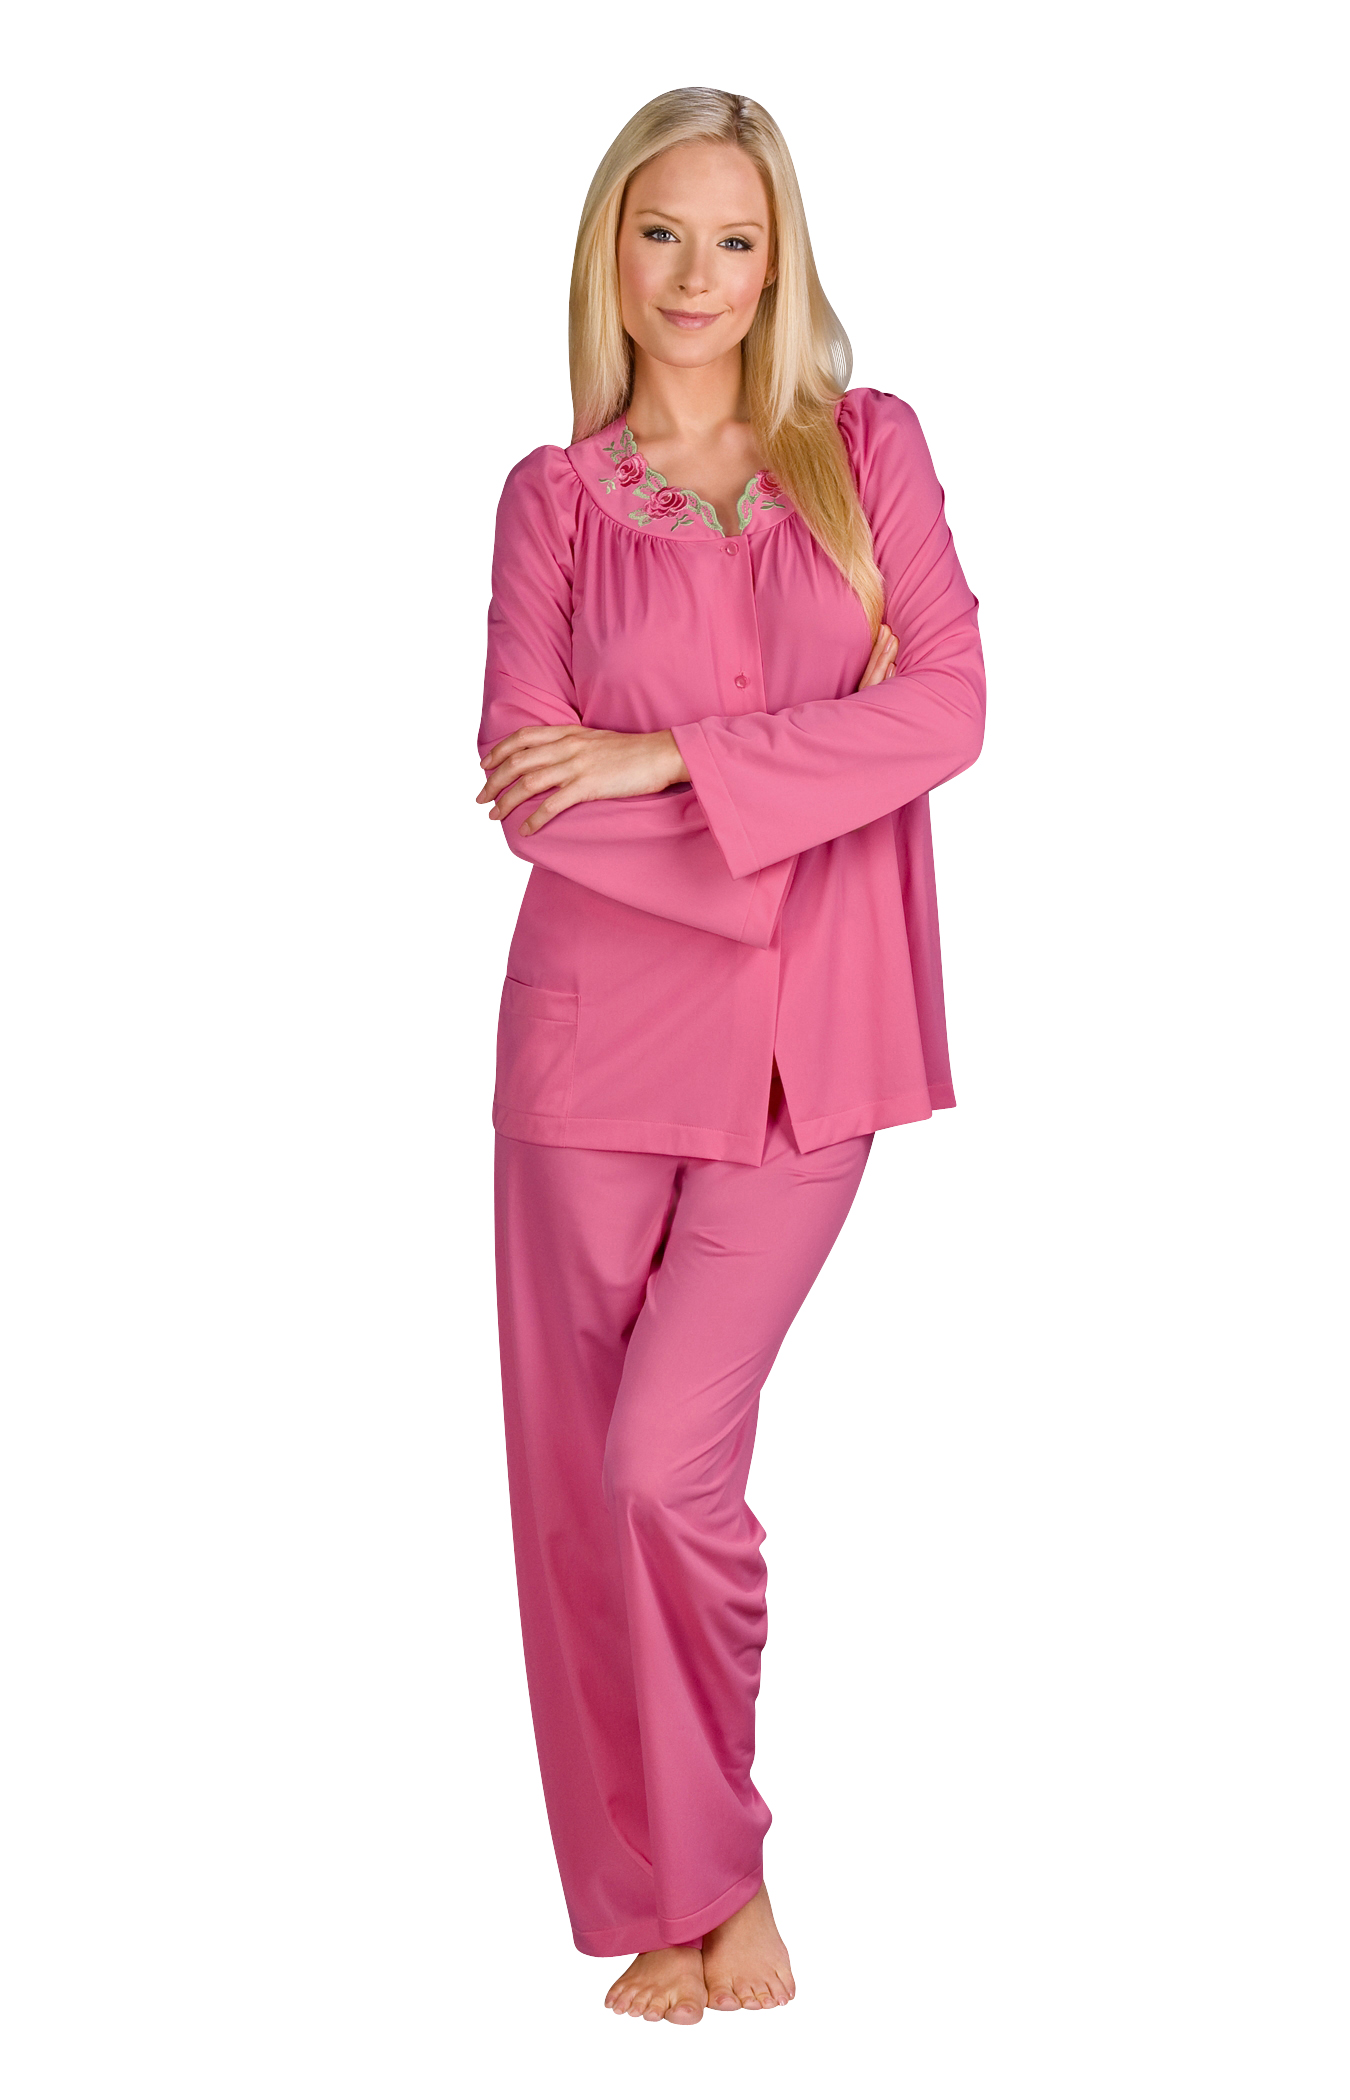 76283 - Shadowline® Petals 100% Nylon Women s Long Sleeve Pajama ... facc8237b